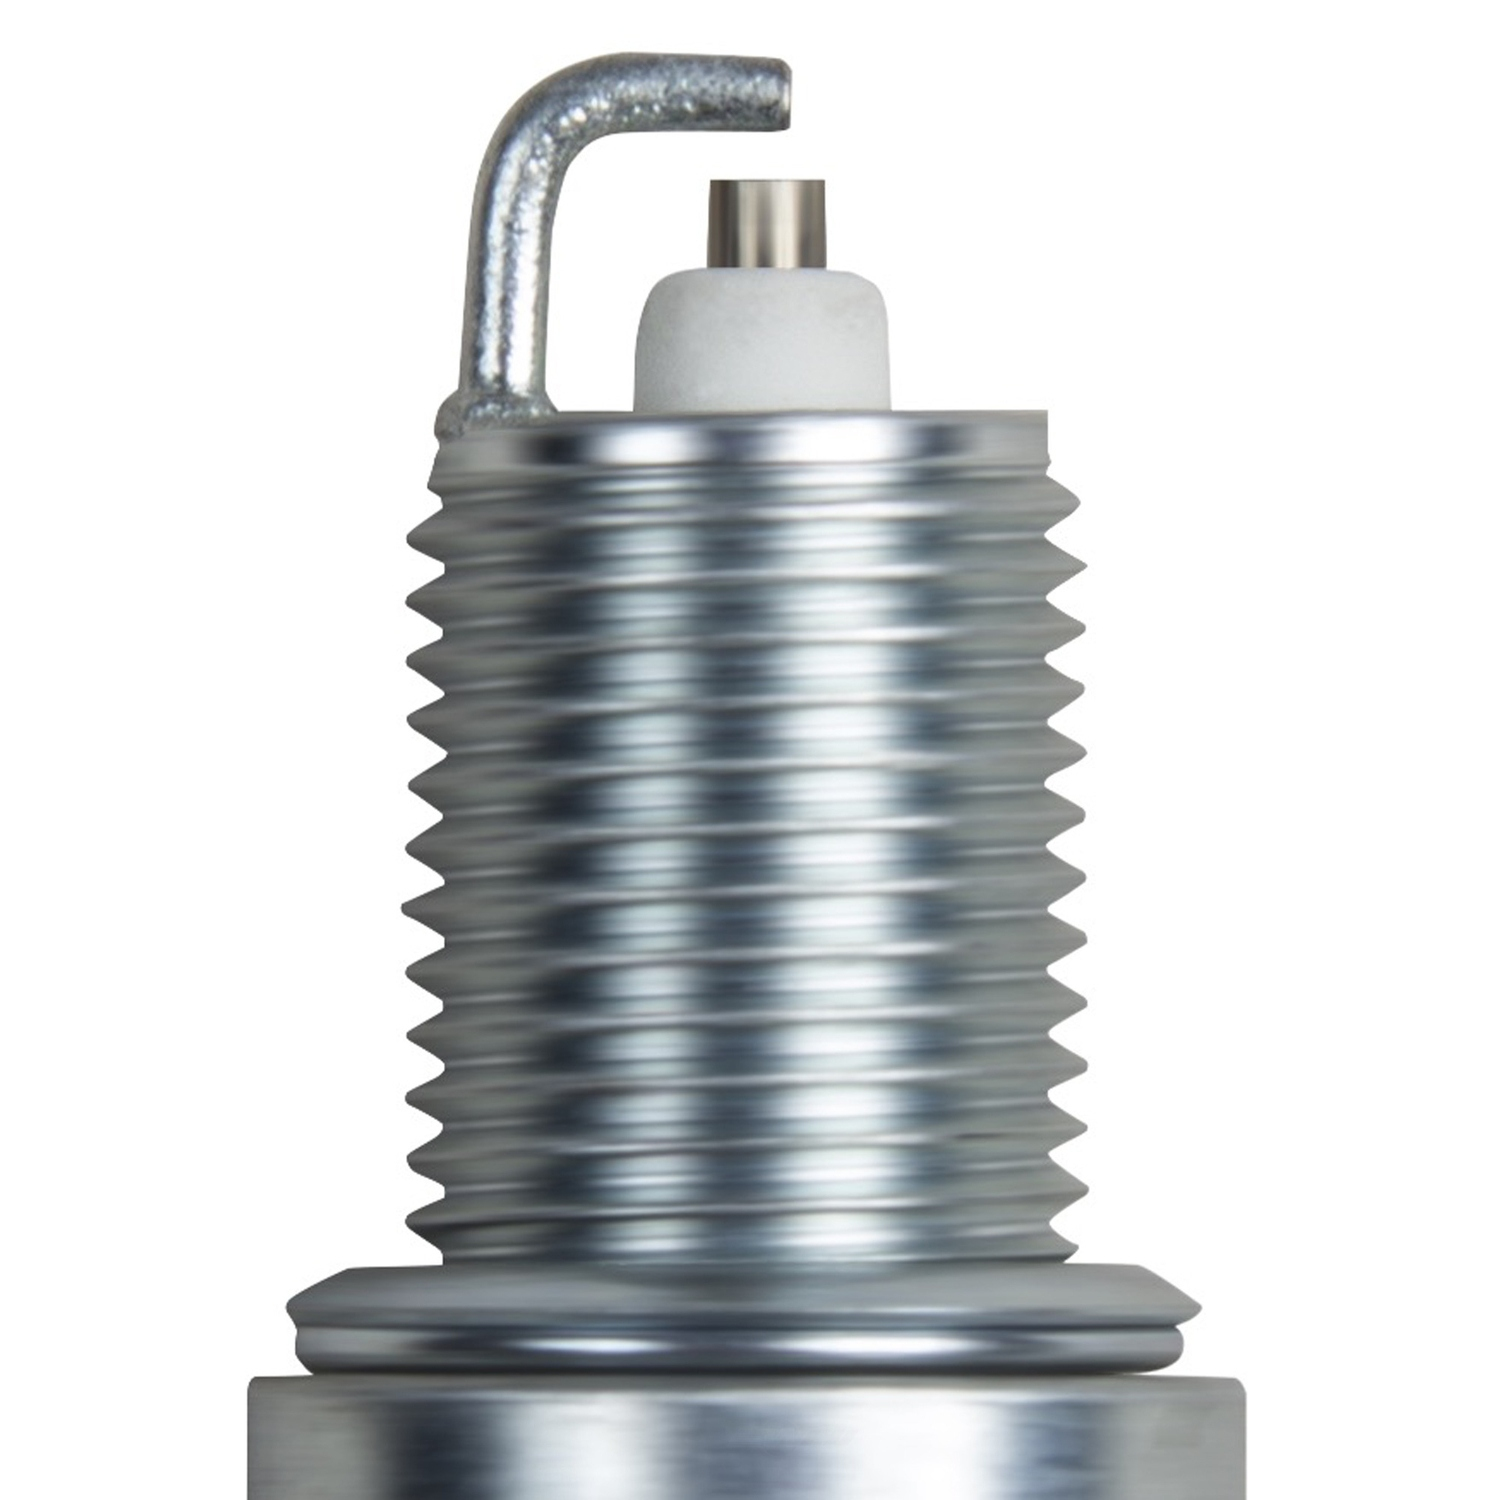 CHAMPION SPARK PLUGS - Copper Plus Spark Plug - CHA 405